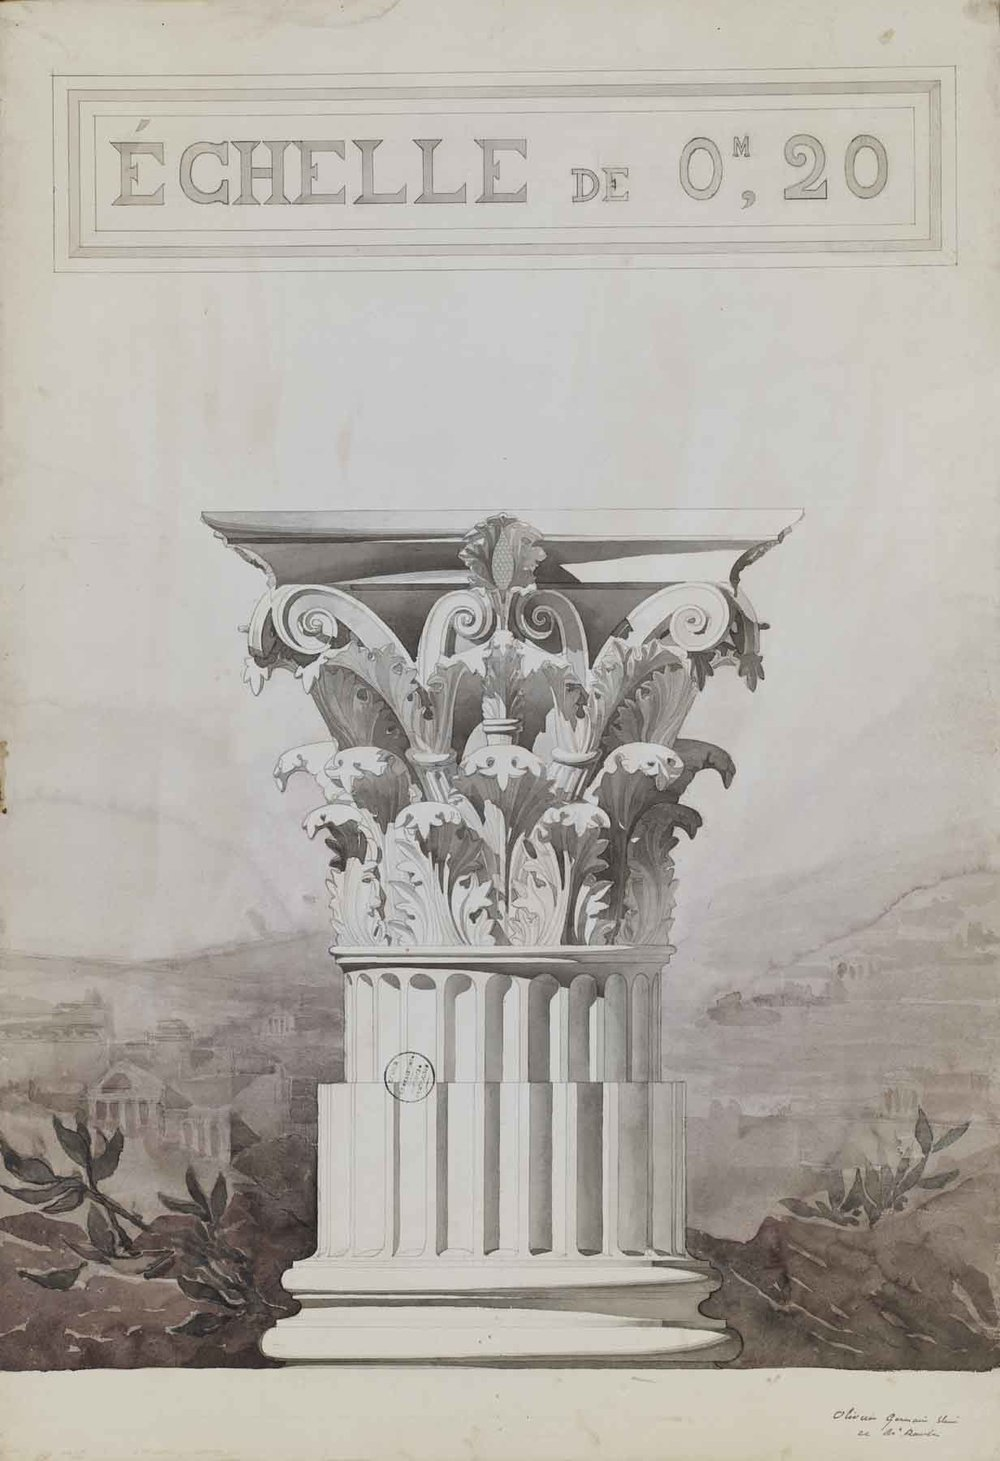 "Jules-Germain Olivier,  Study of a Corinthian Column Capital,  1890-1900, pencil and watercolor on paper, 43 3/4 x 31 7/8"" framed"